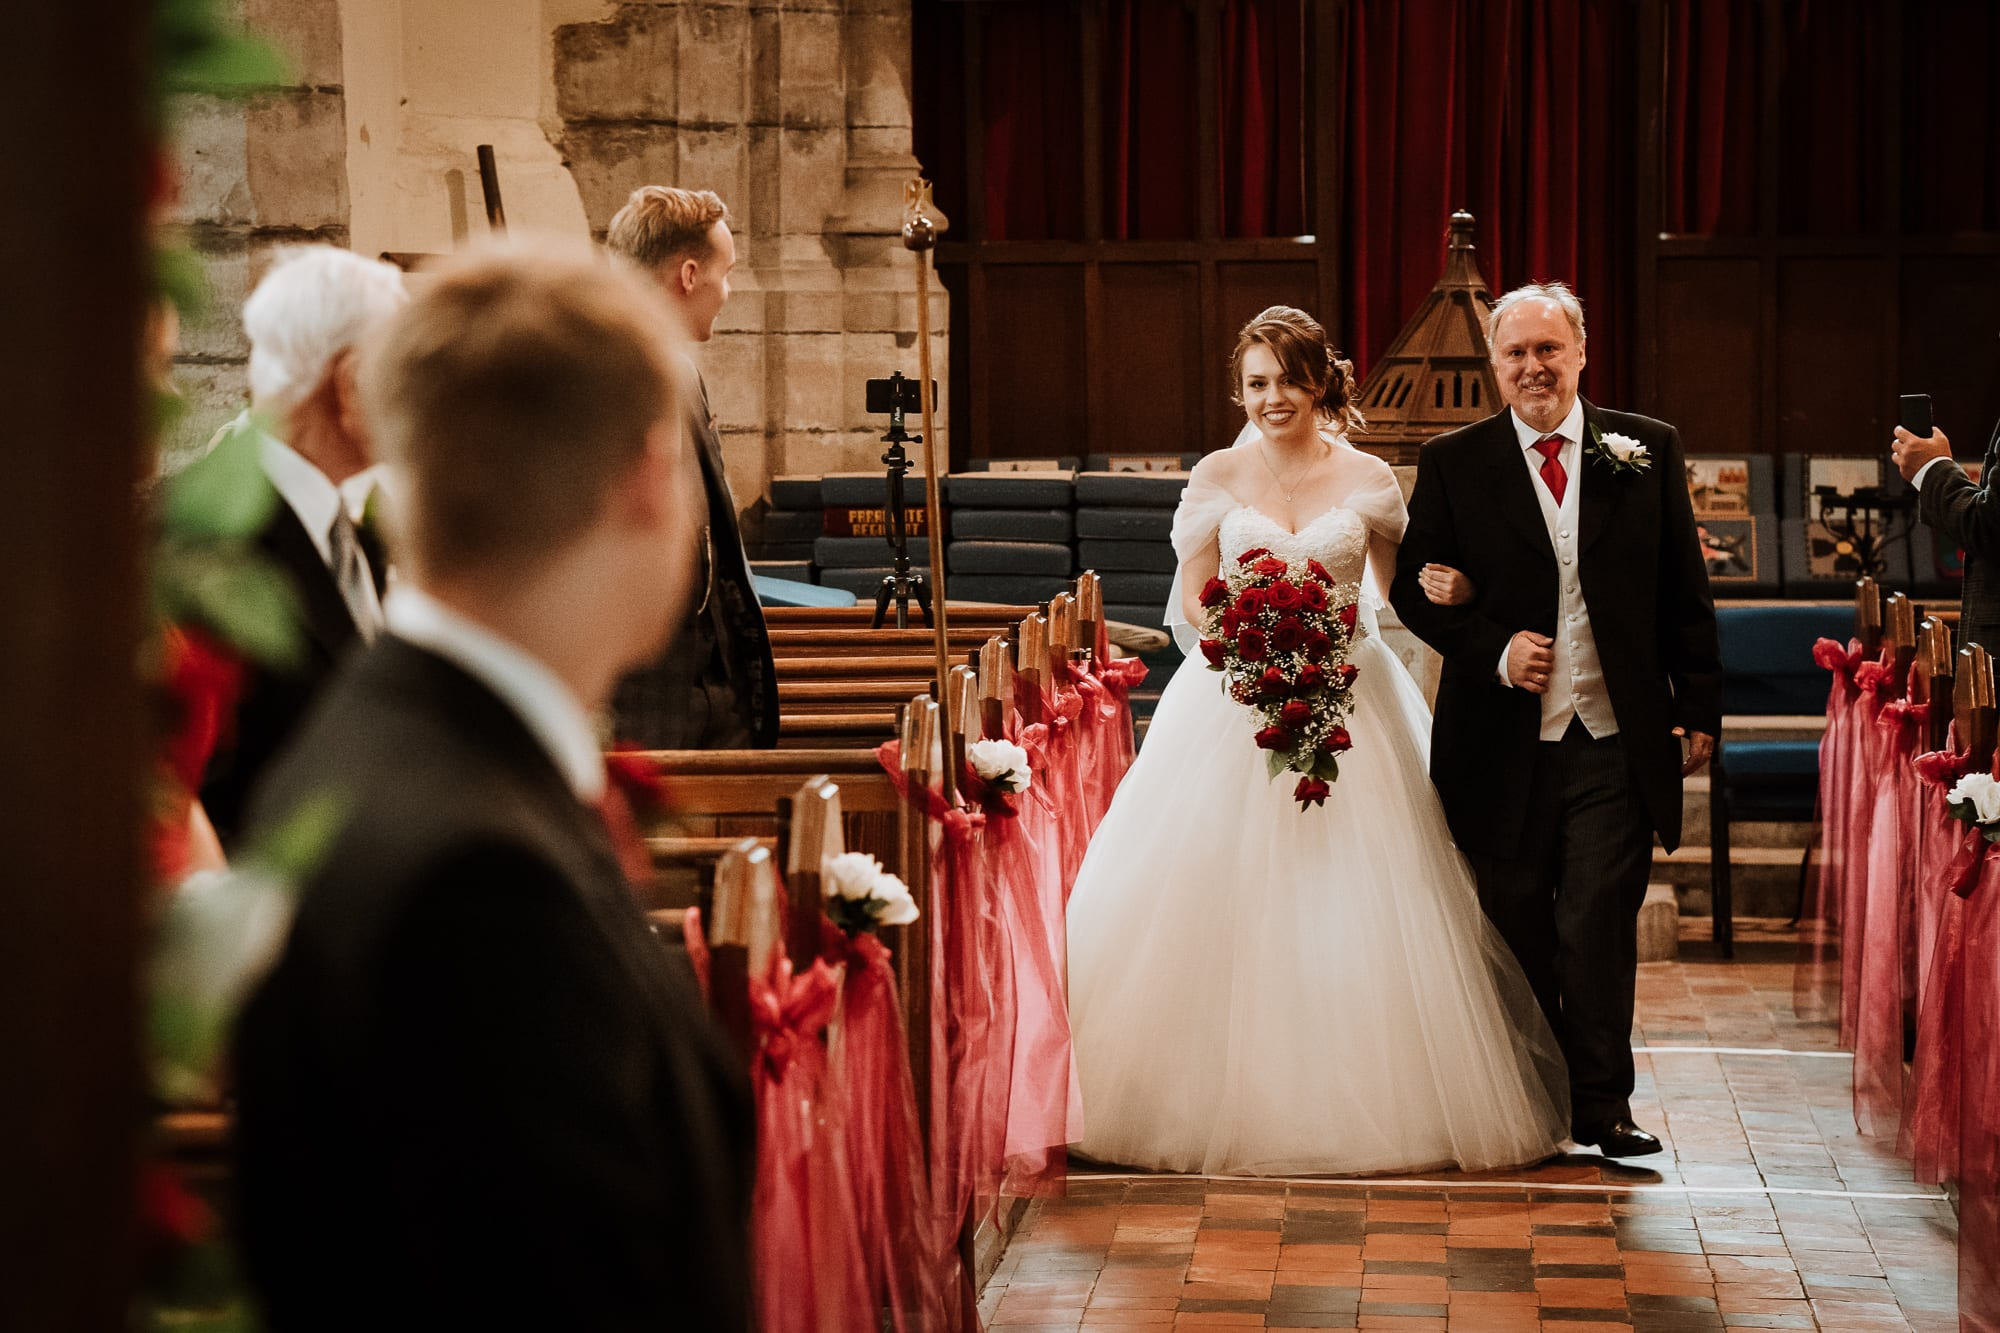 Bride and Groom looking at each other for the first time as she is walked down the aisle by her father